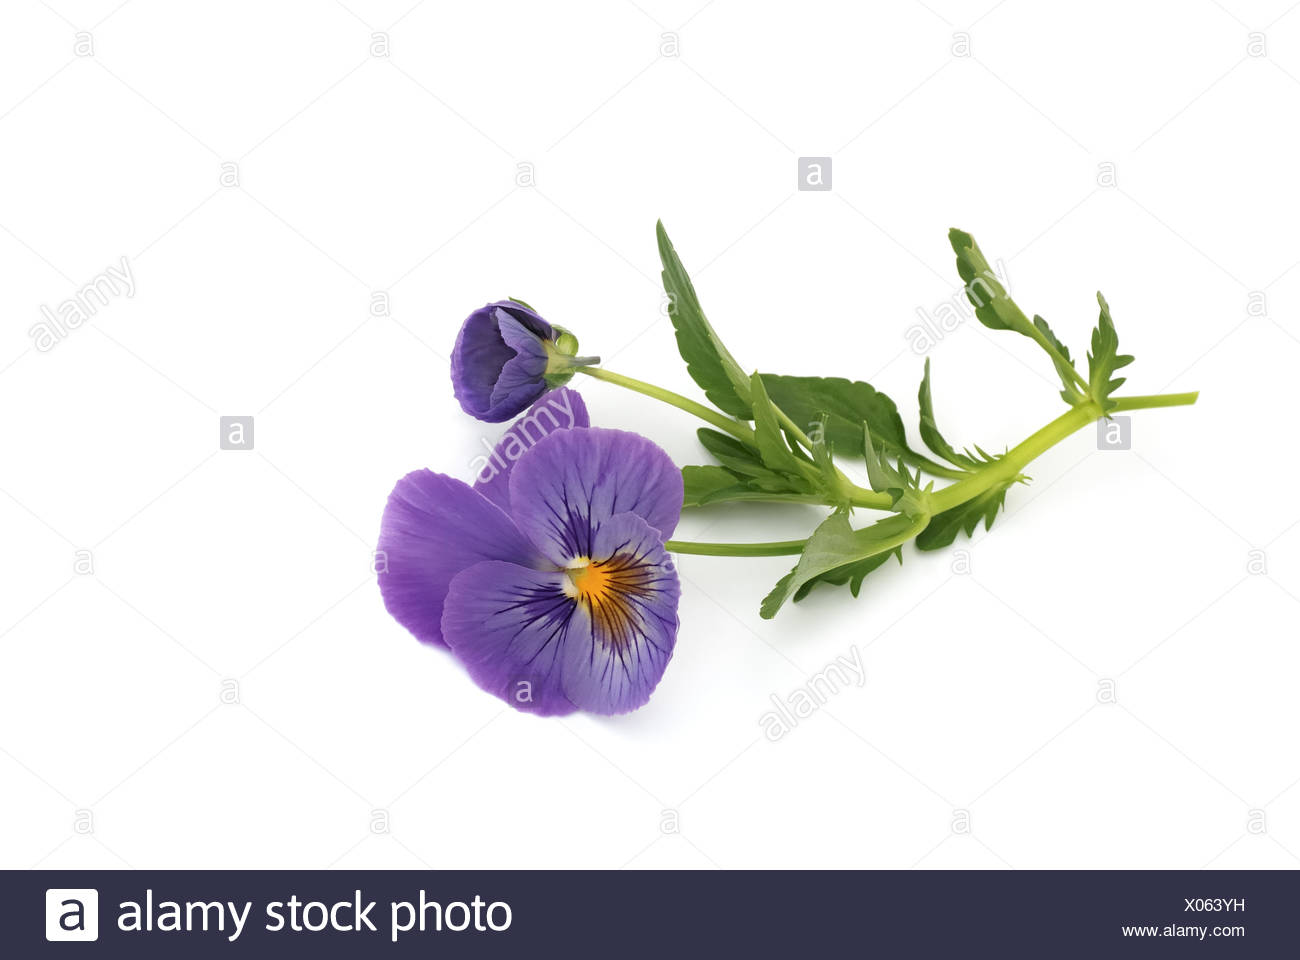 pansies on white background - Stock Image